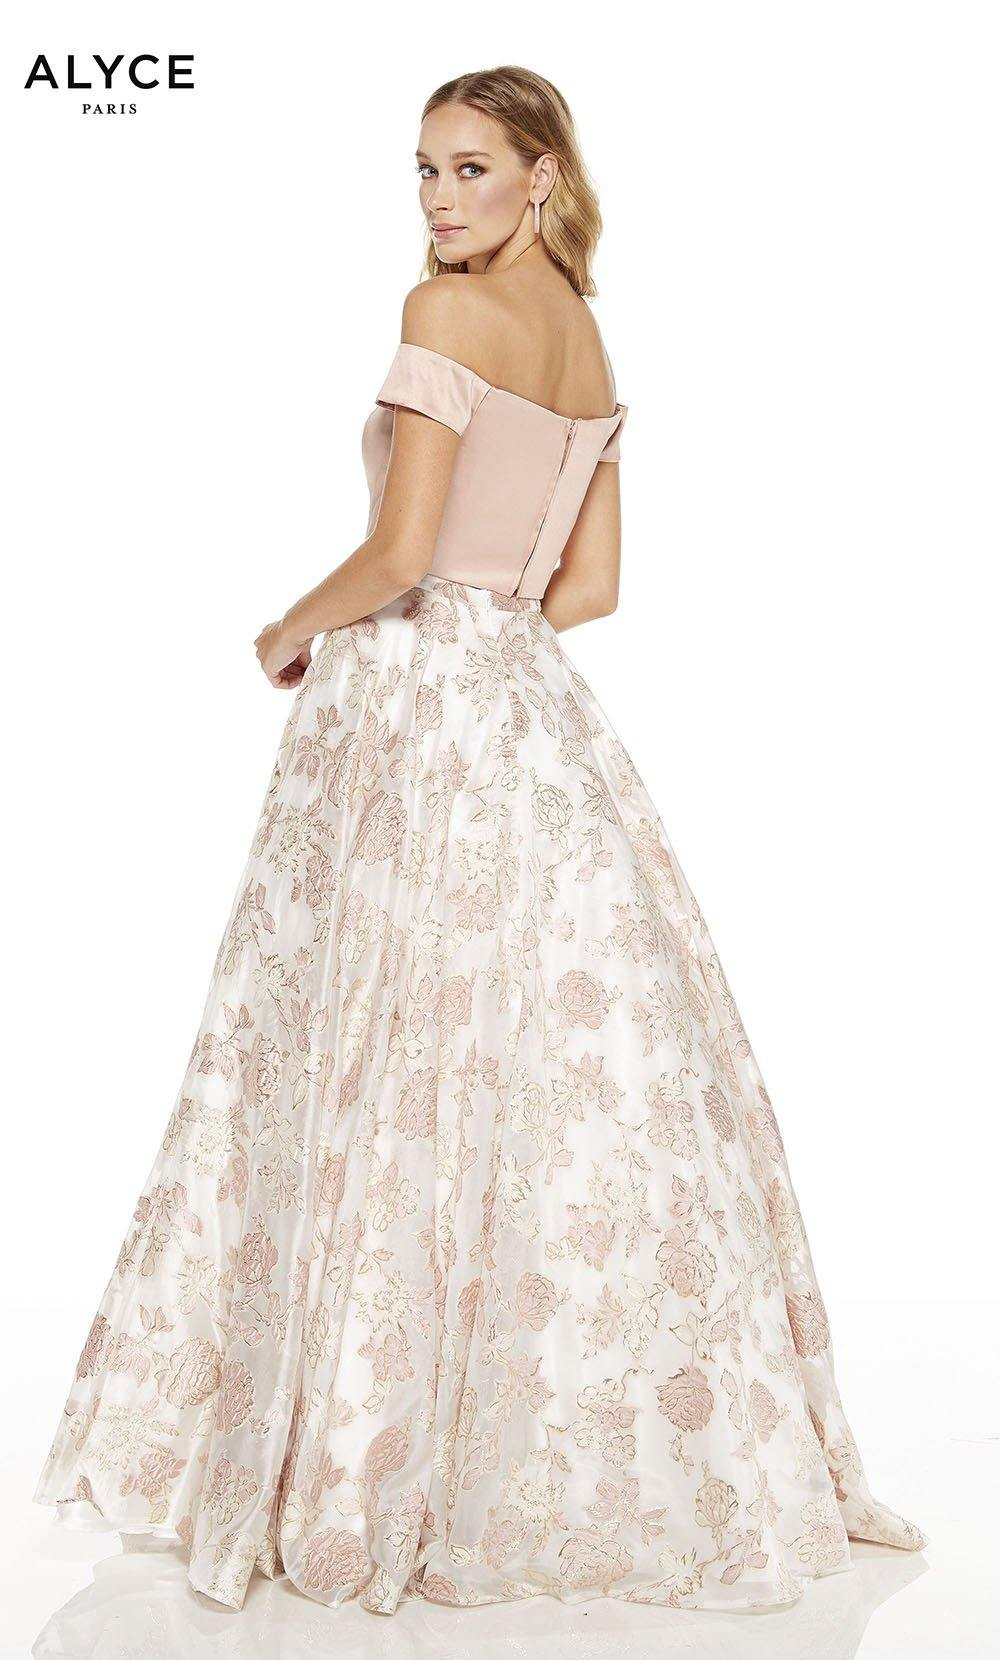 Dusty Rose - Diamond white off the shoulder two piece prom dress with satin crop top and a floral skirt